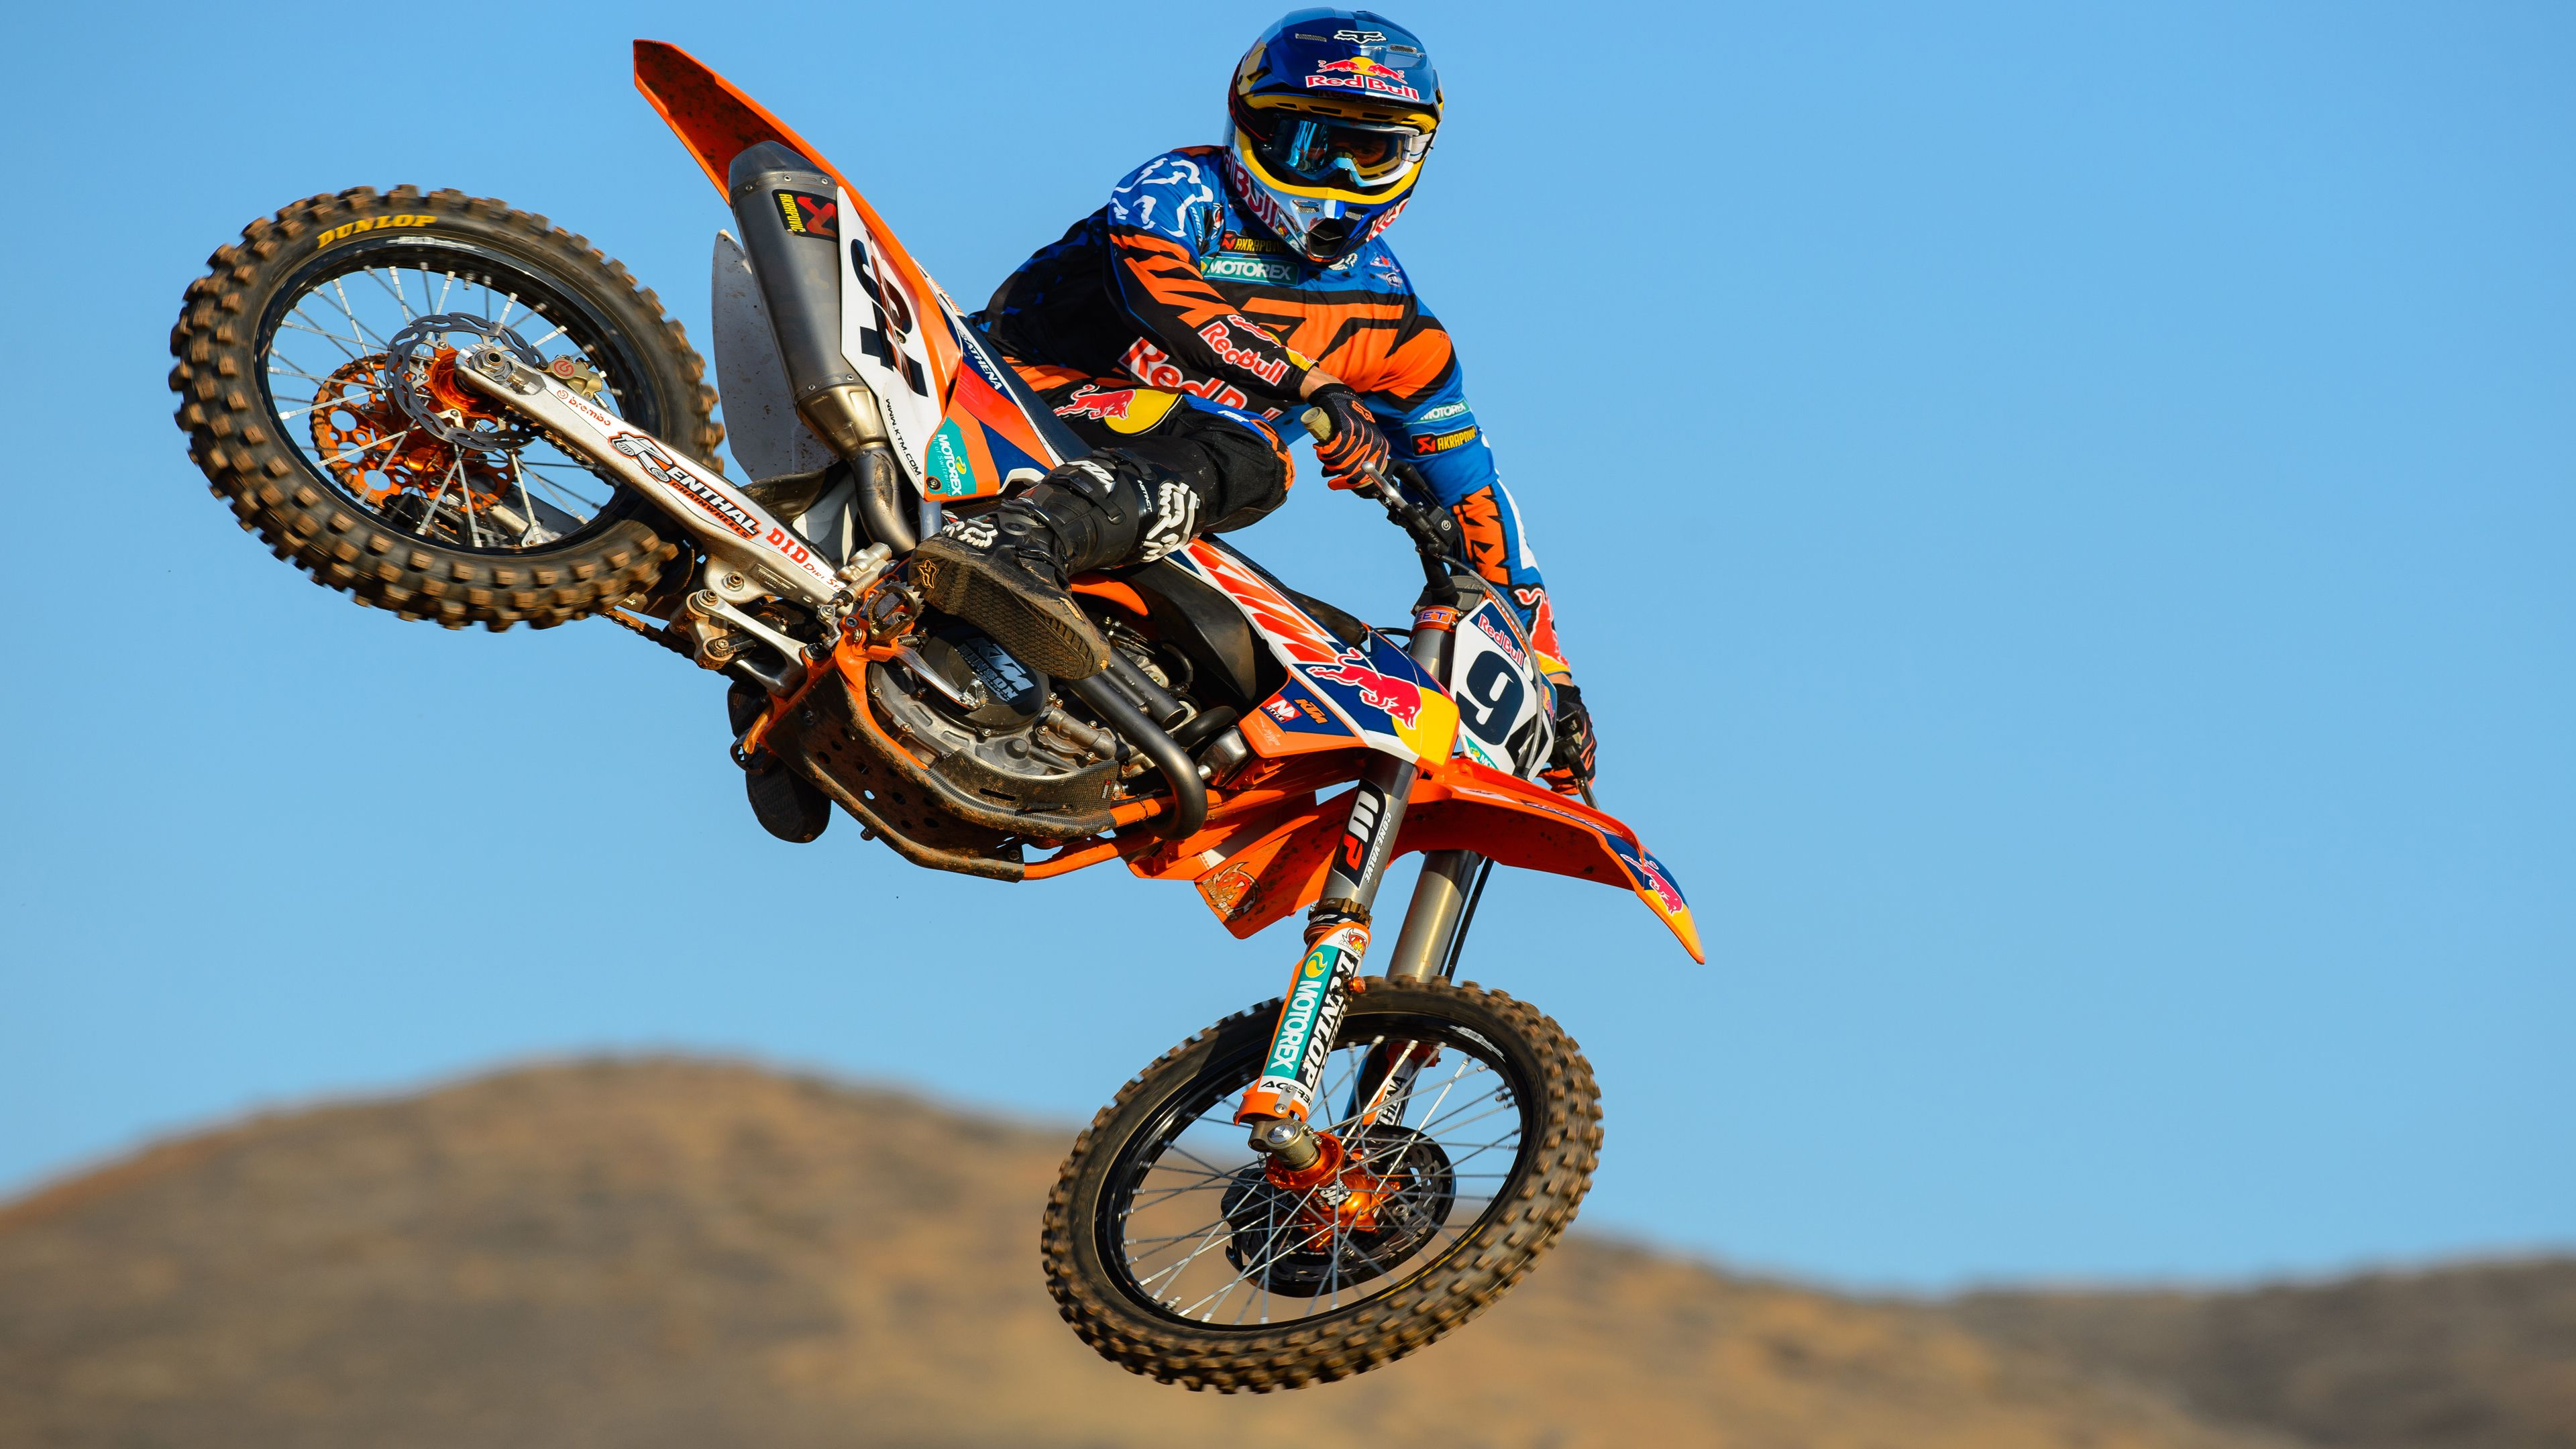 Ktm Motocross Hd 4k Wallpaper Bike Pinterest HD Wallpapers Download Free Images Wallpaper [1000image.com]